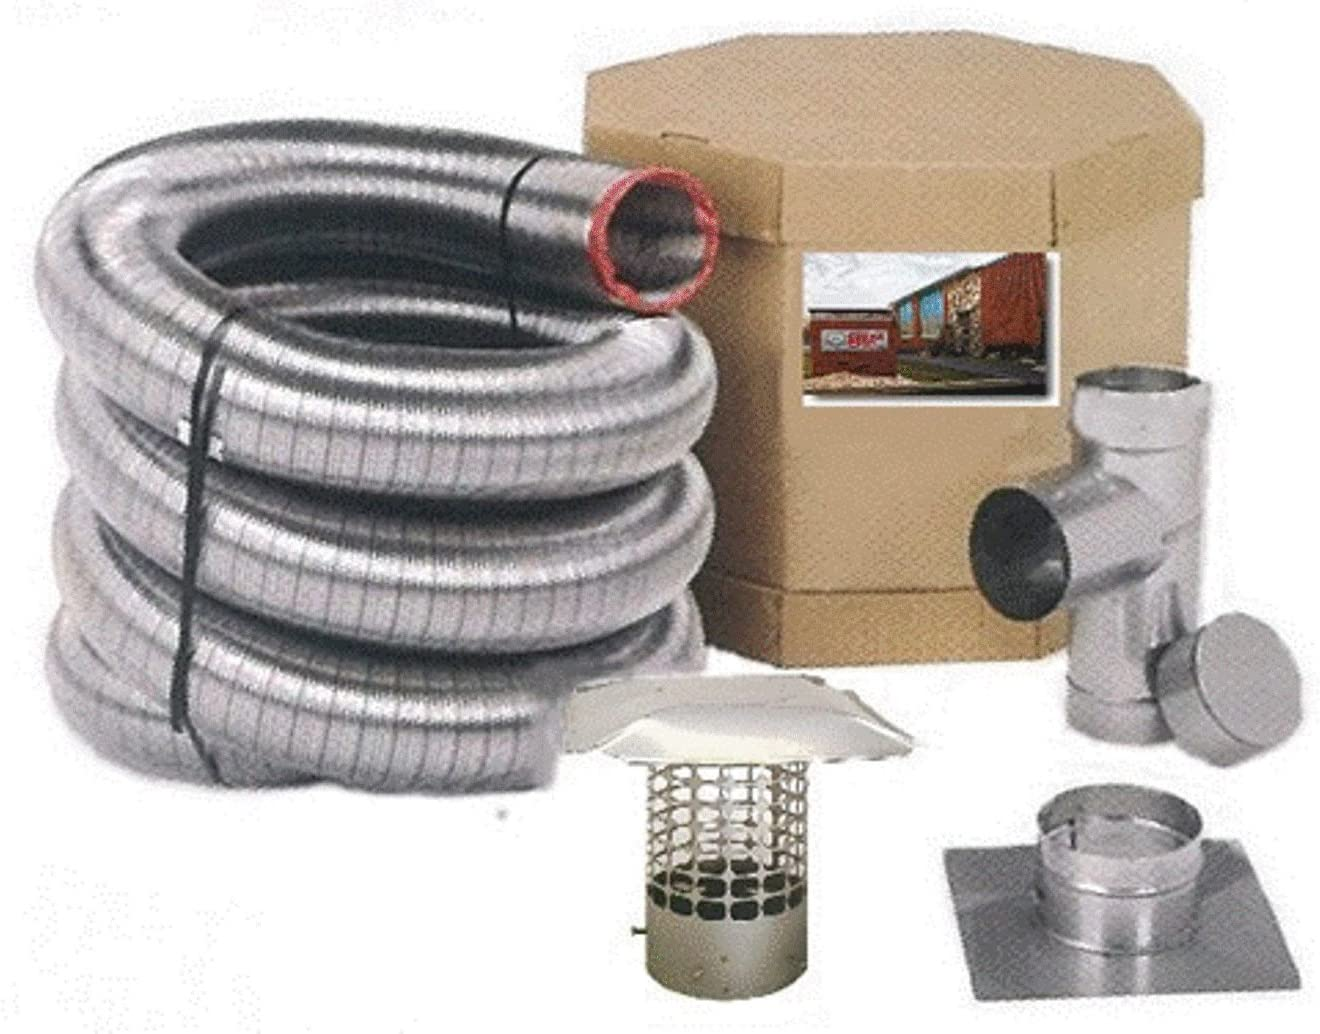 Forever Vent SW440SSK SmoothWall Double Ply Stainless Steel Chimney Liner Kit, 4-Inch x 40-Feet